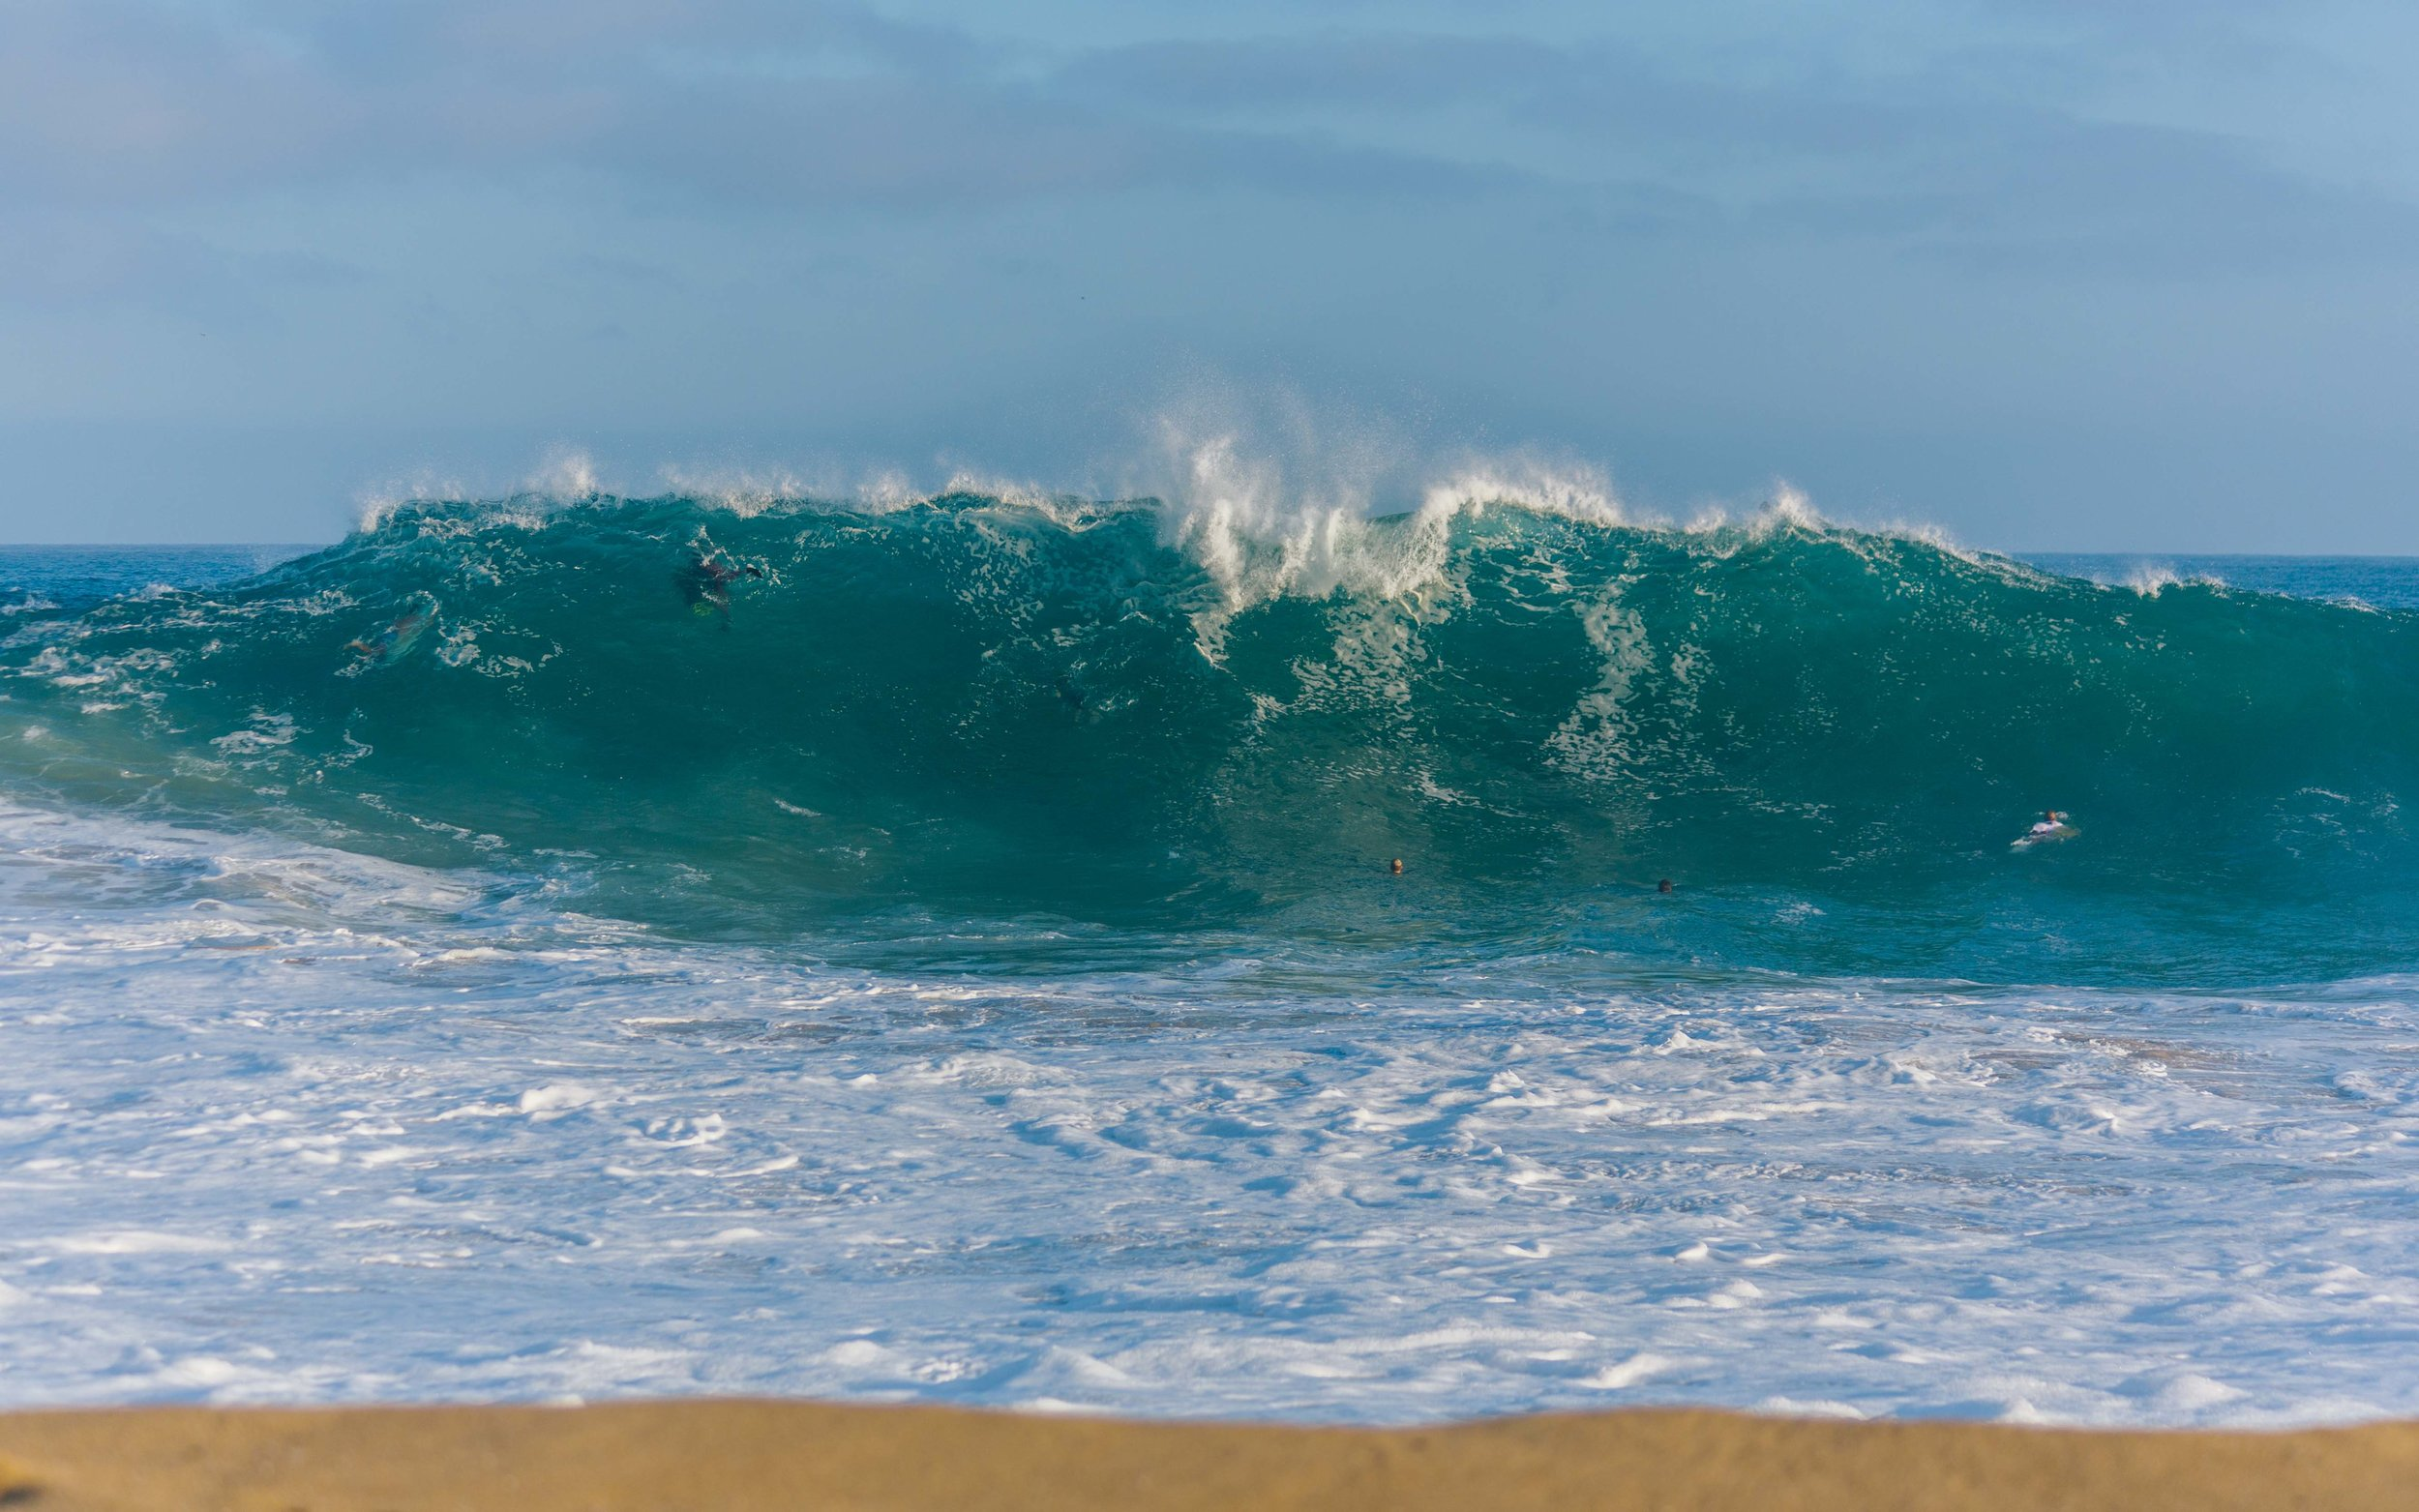 20140707-thewedge-010-sm.jpg